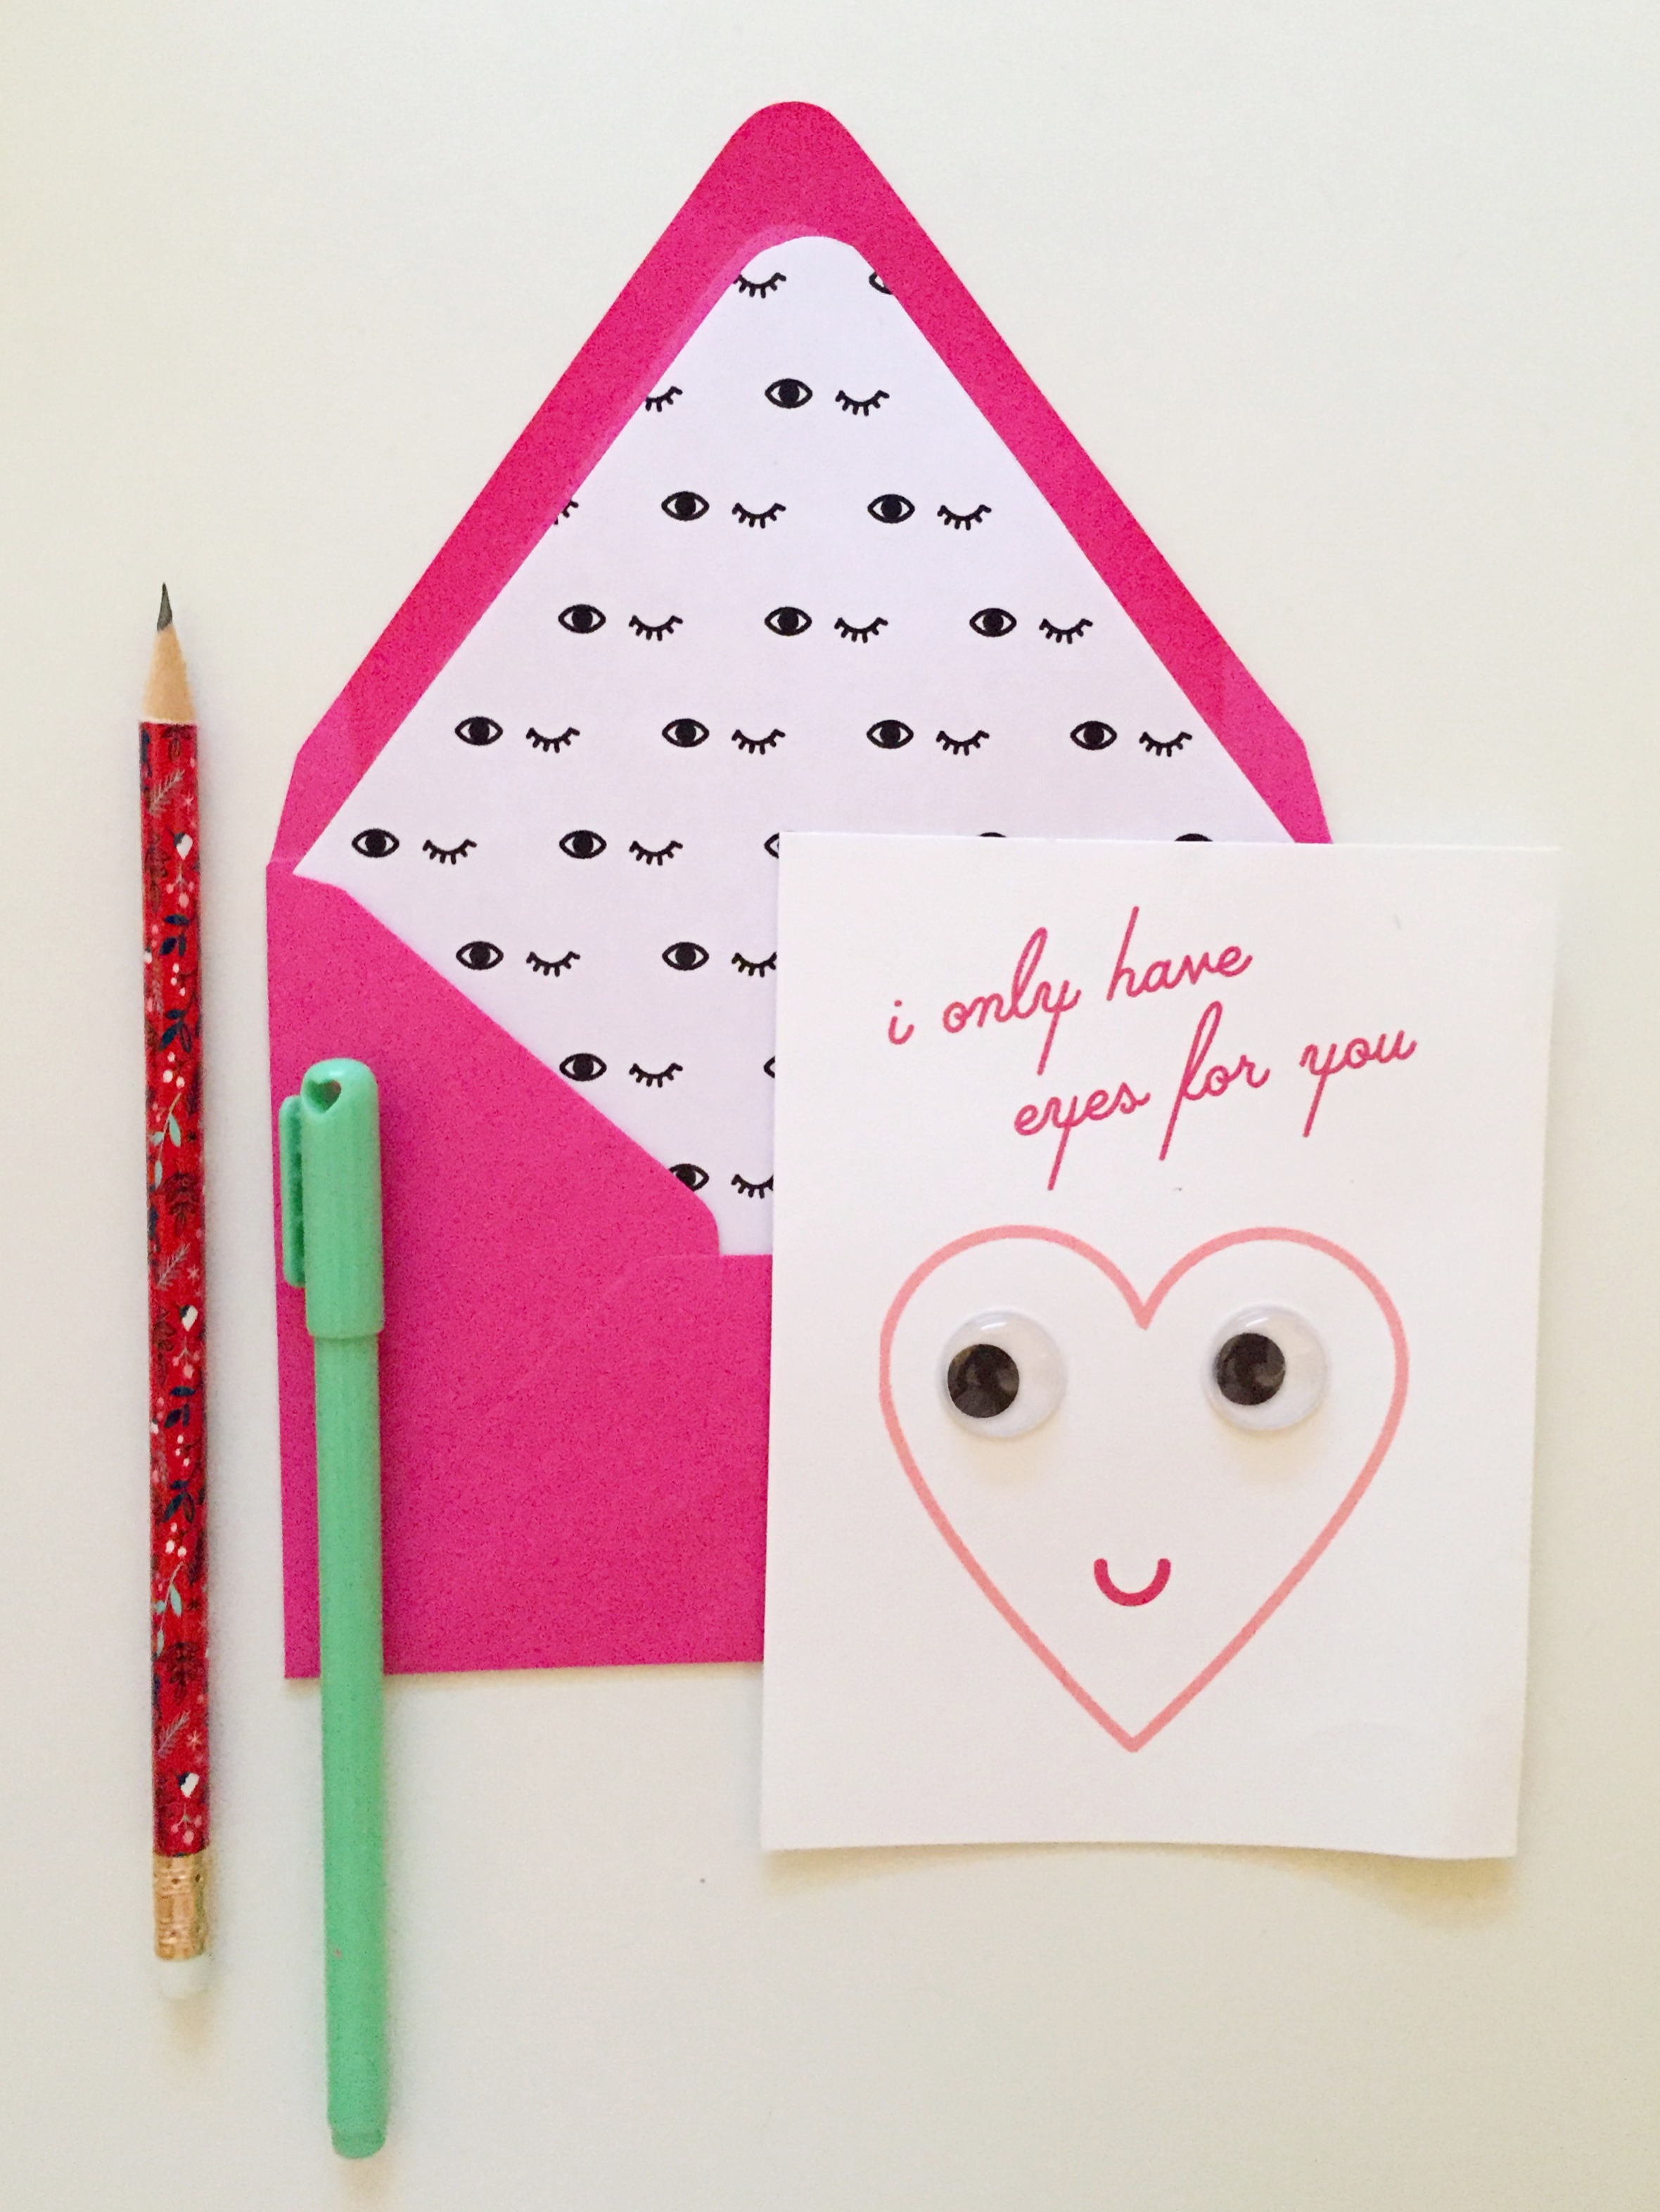 photograph relating to Printable Googly Eyes titled Printable Googly Eyed Valentines Darling Studio Branding